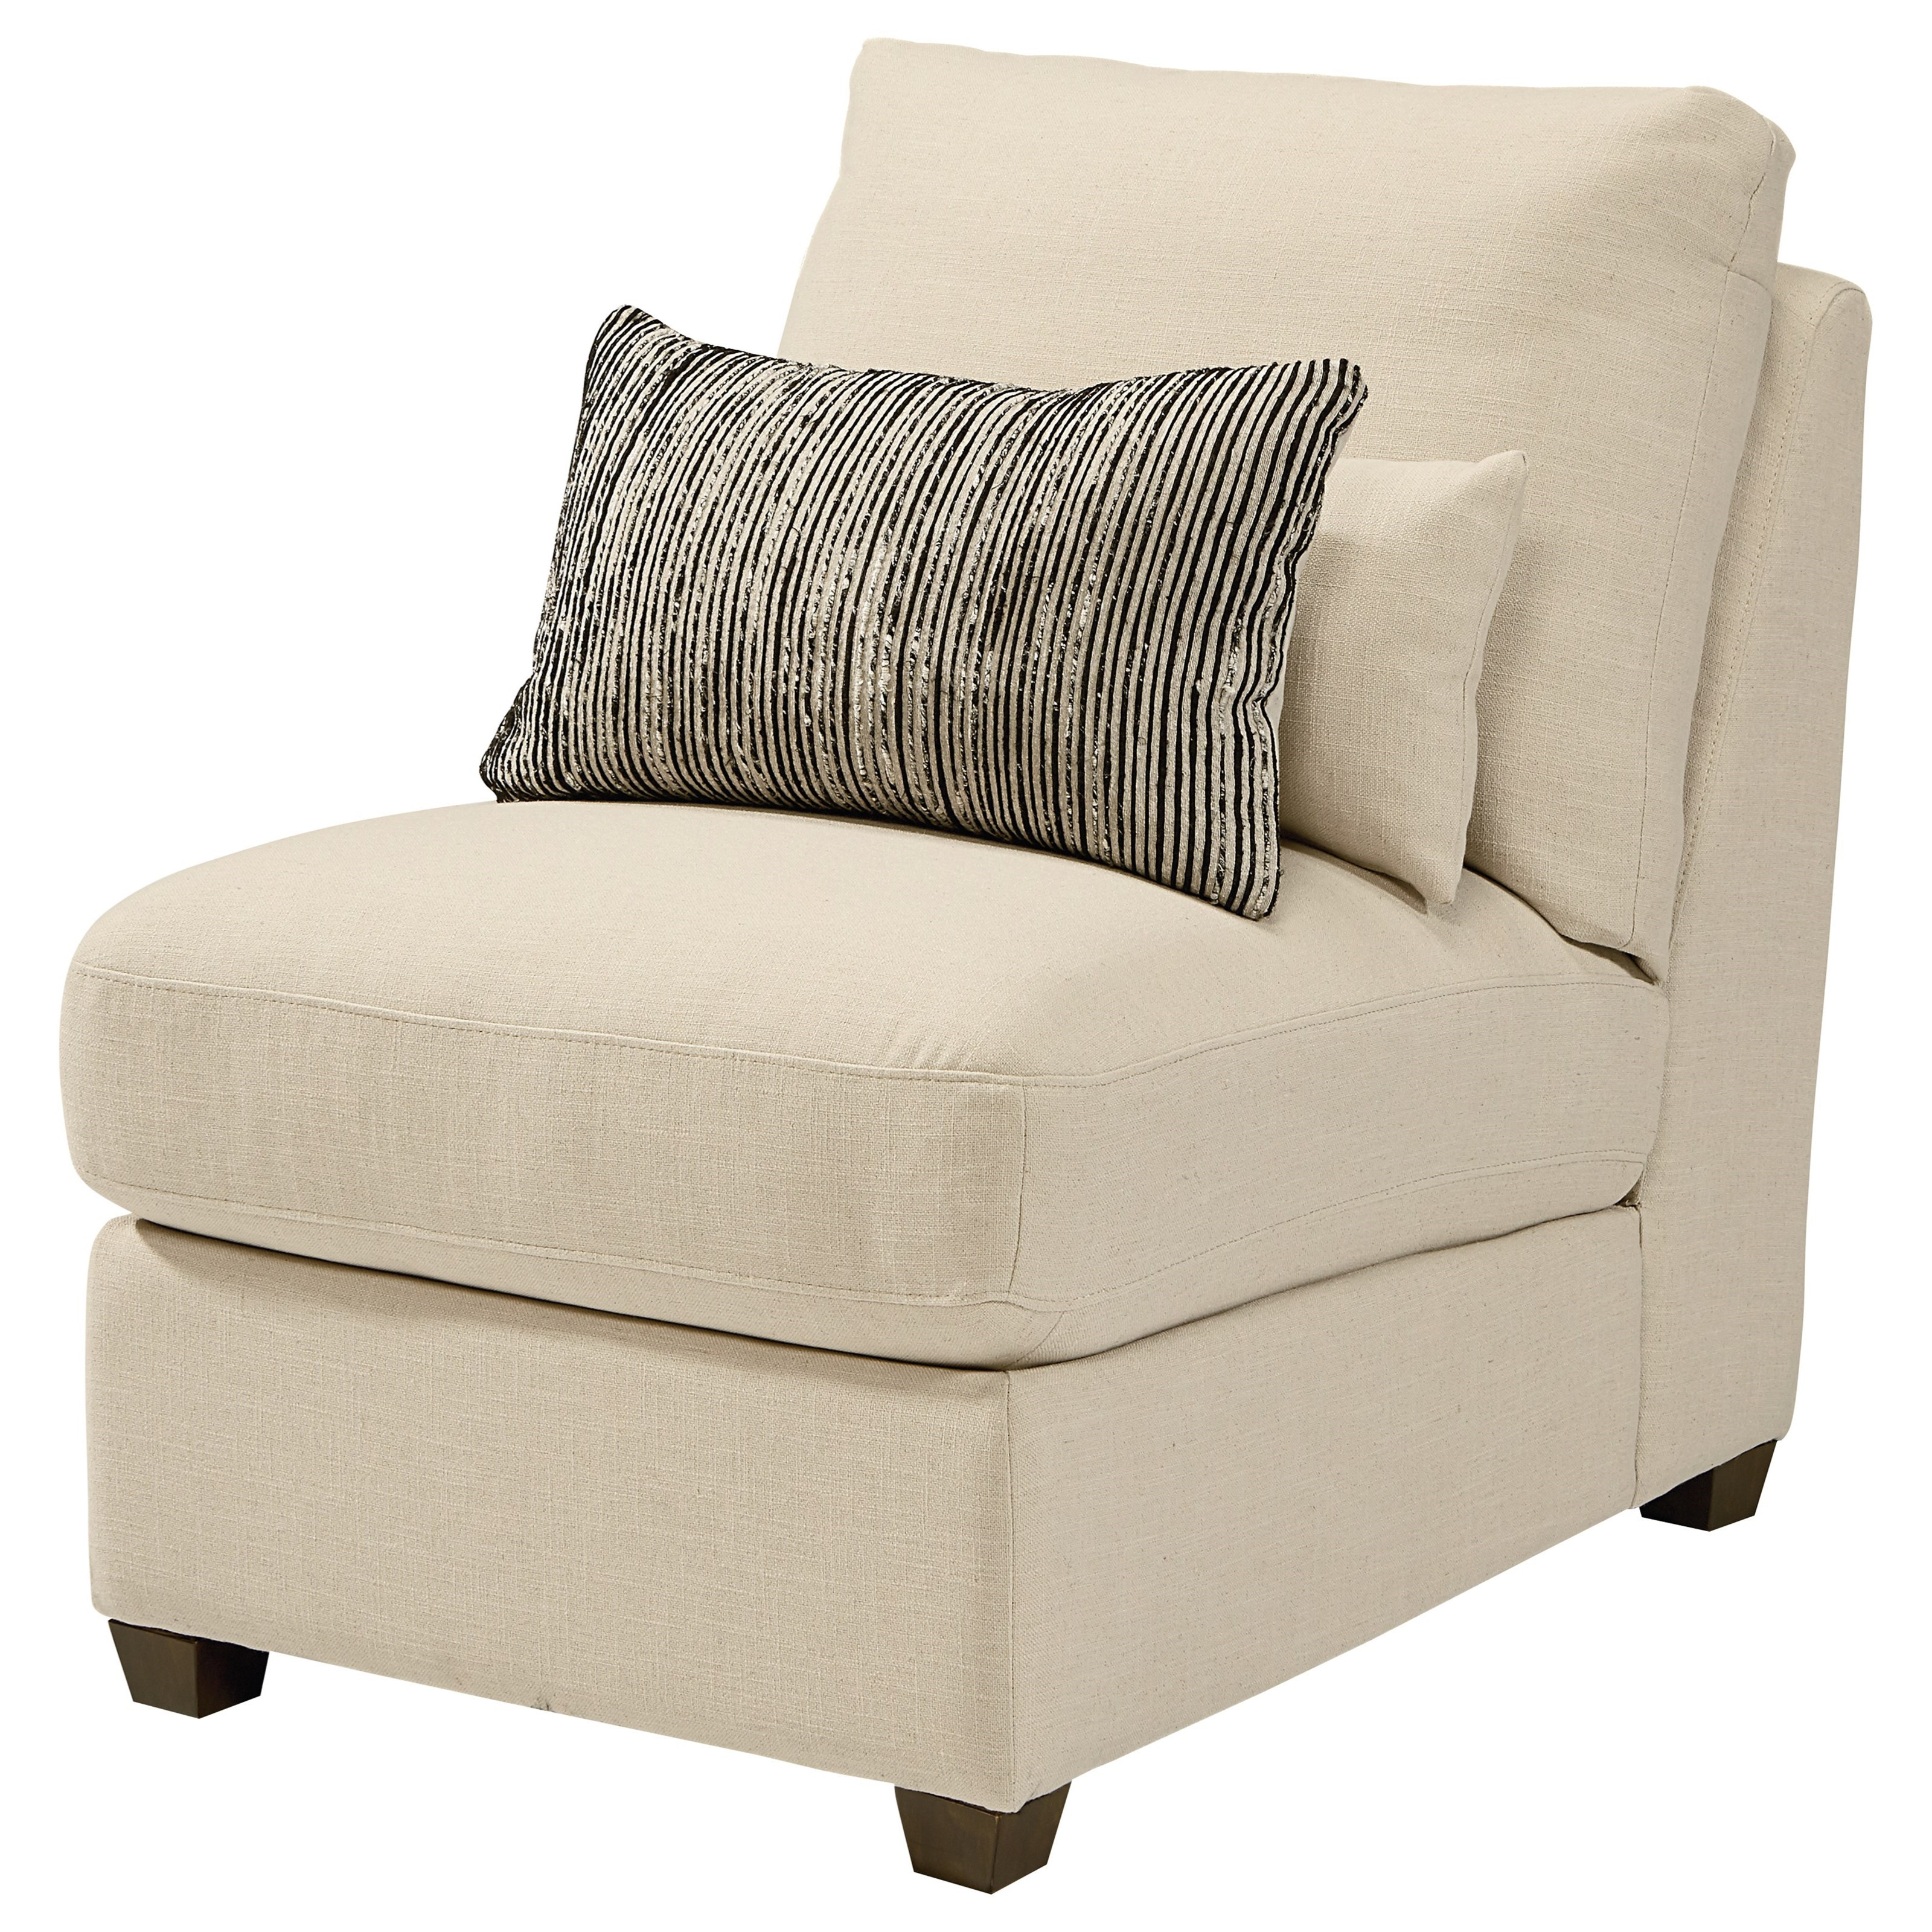 Magnolia Homejoanna Gaines Homestead Armless Chair With In Favorite Magnolia Home Homestead 4 Piece Sectionals By Joanna Gaines (View 17 of 20)